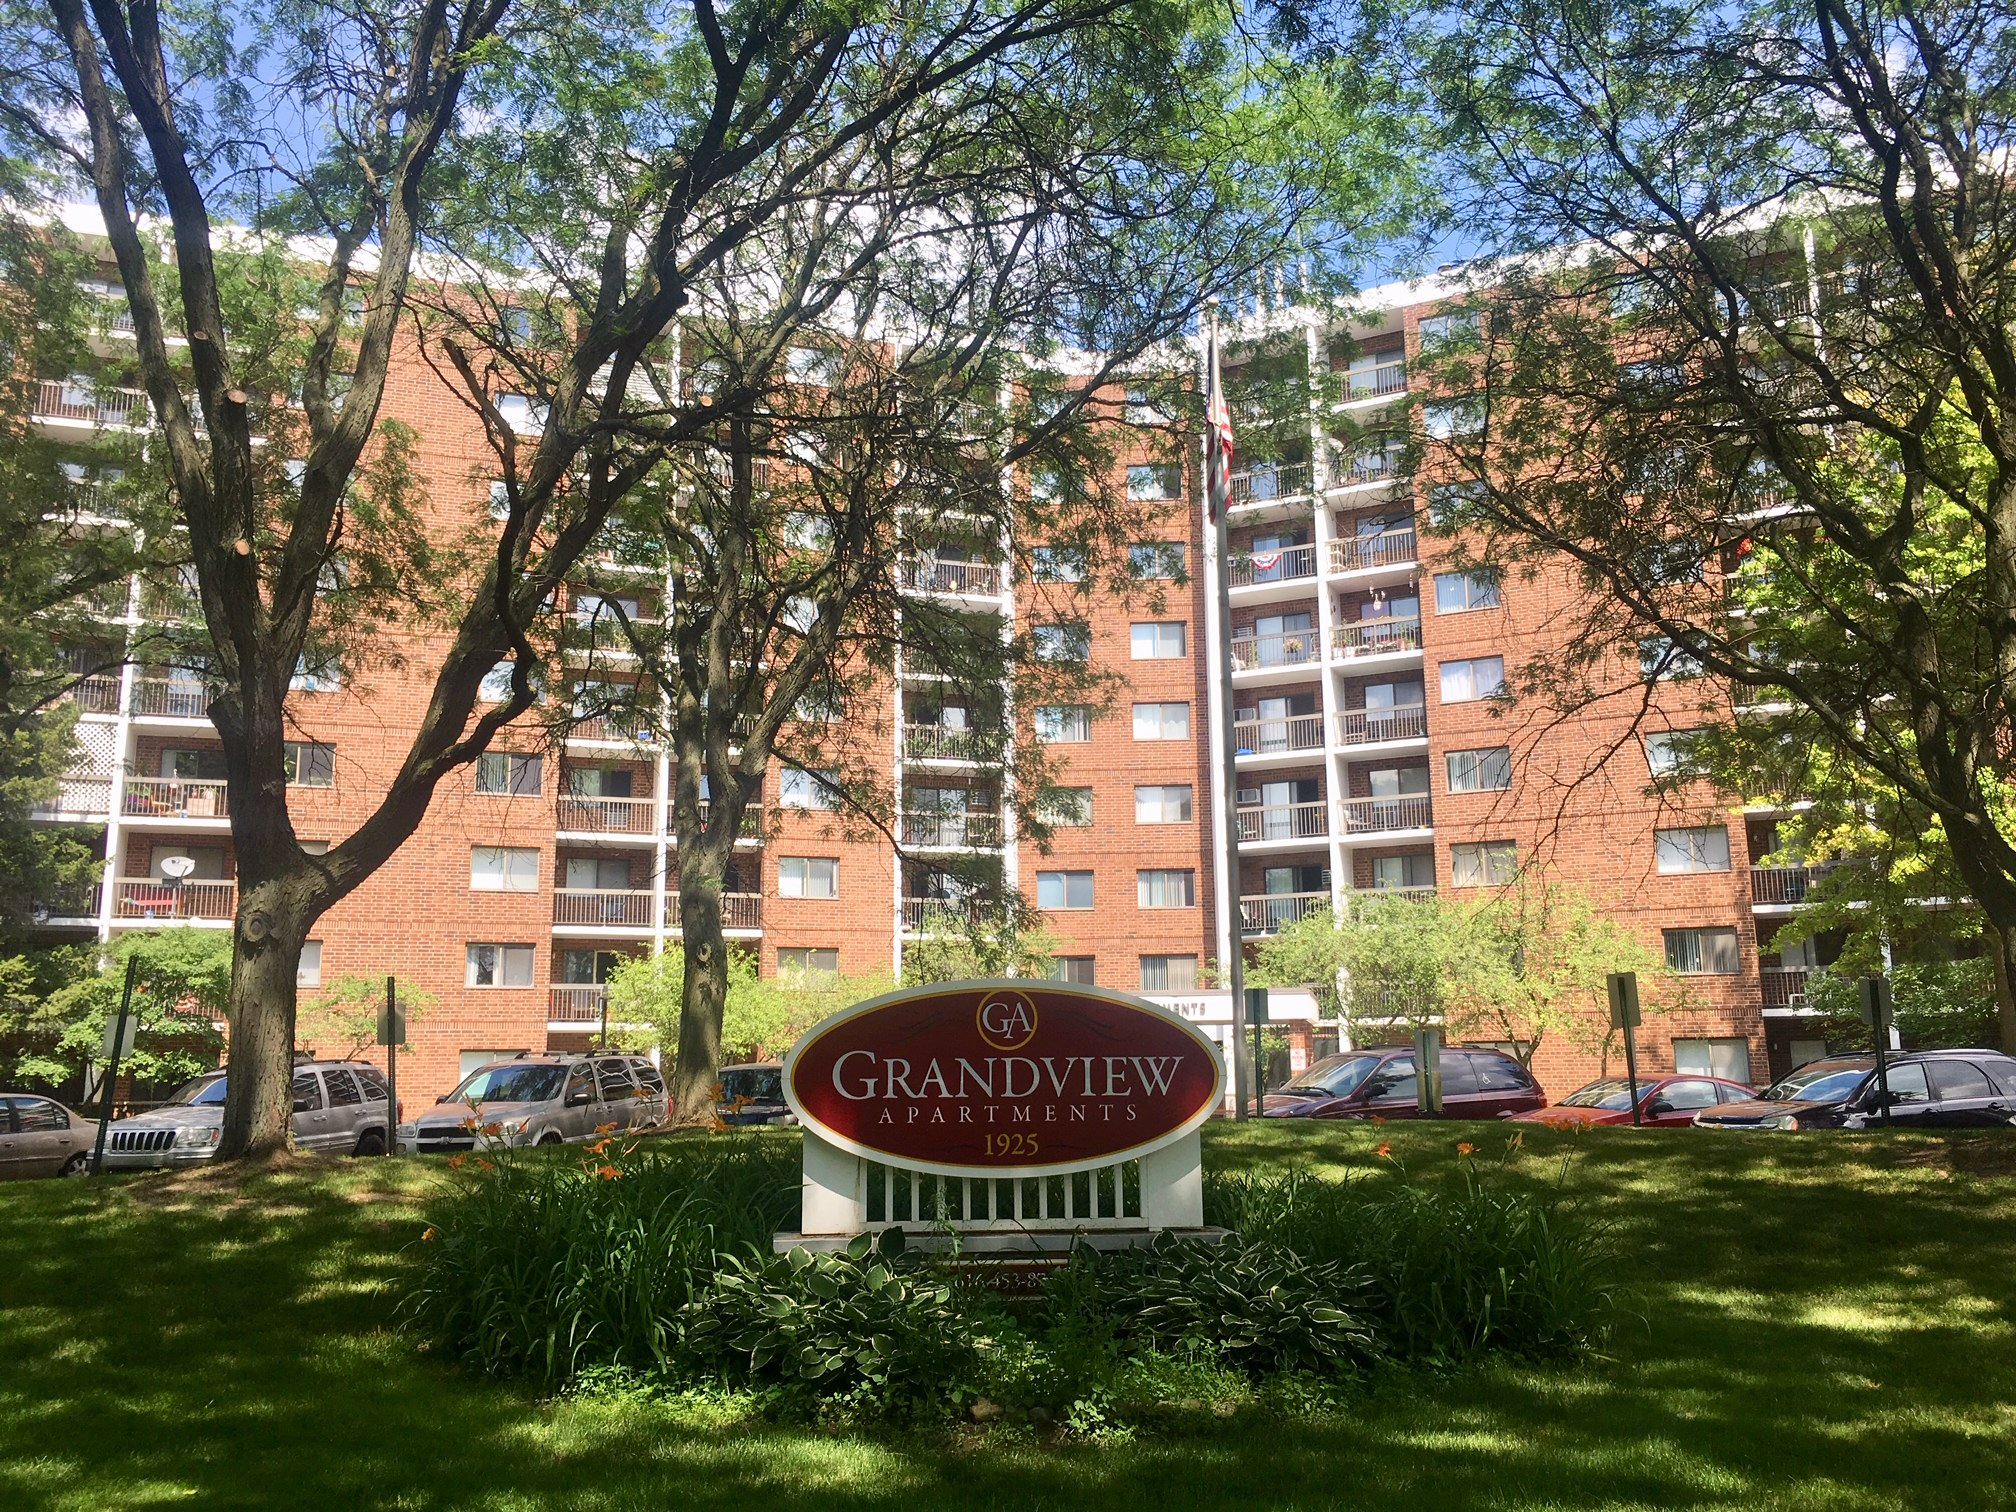 Grandview Apartments (62 Years Or Older, Independent Living Community)